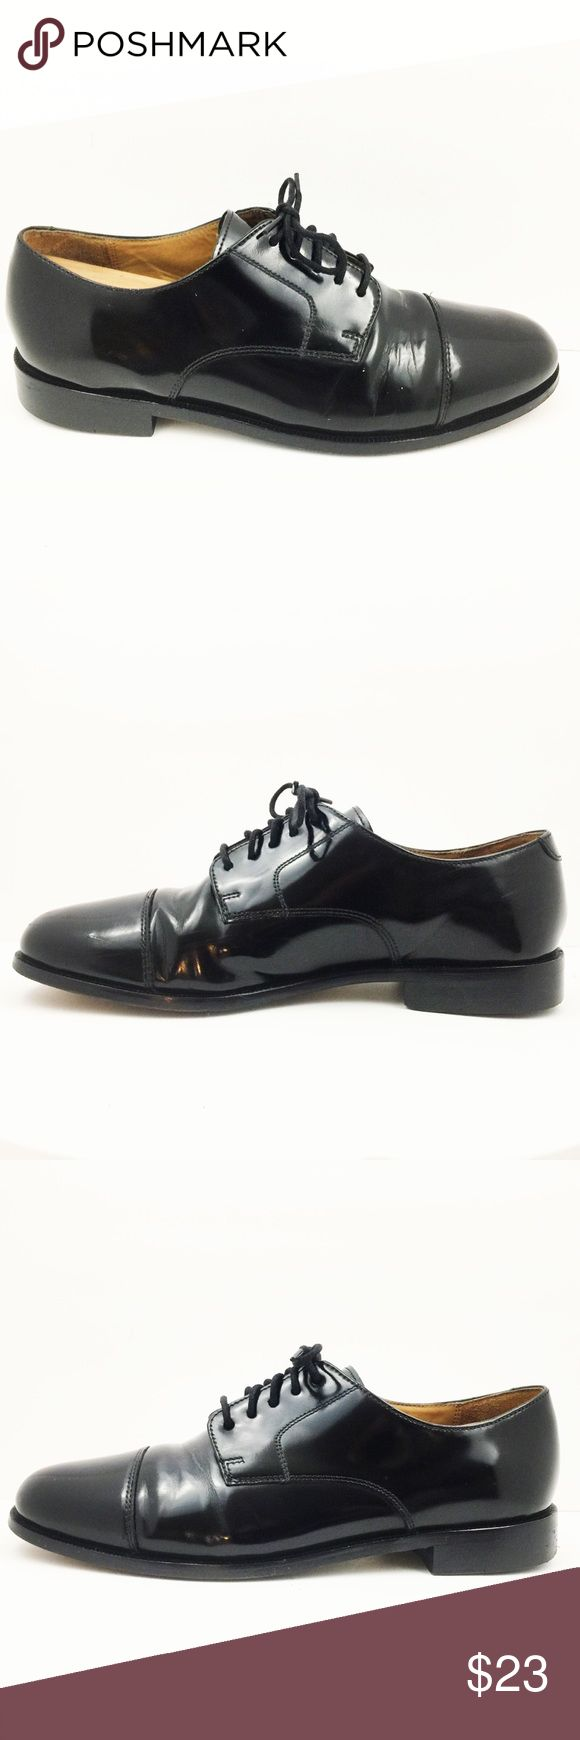 Cole Haan Black oxford dress shoes Cole Haan Caldwell Black oxford Toe dress shoes men's size 9D. There are a few pin head white spots on the outside of the right shoe as pictures. Cole Haan Shoes Oxfords & Derbys